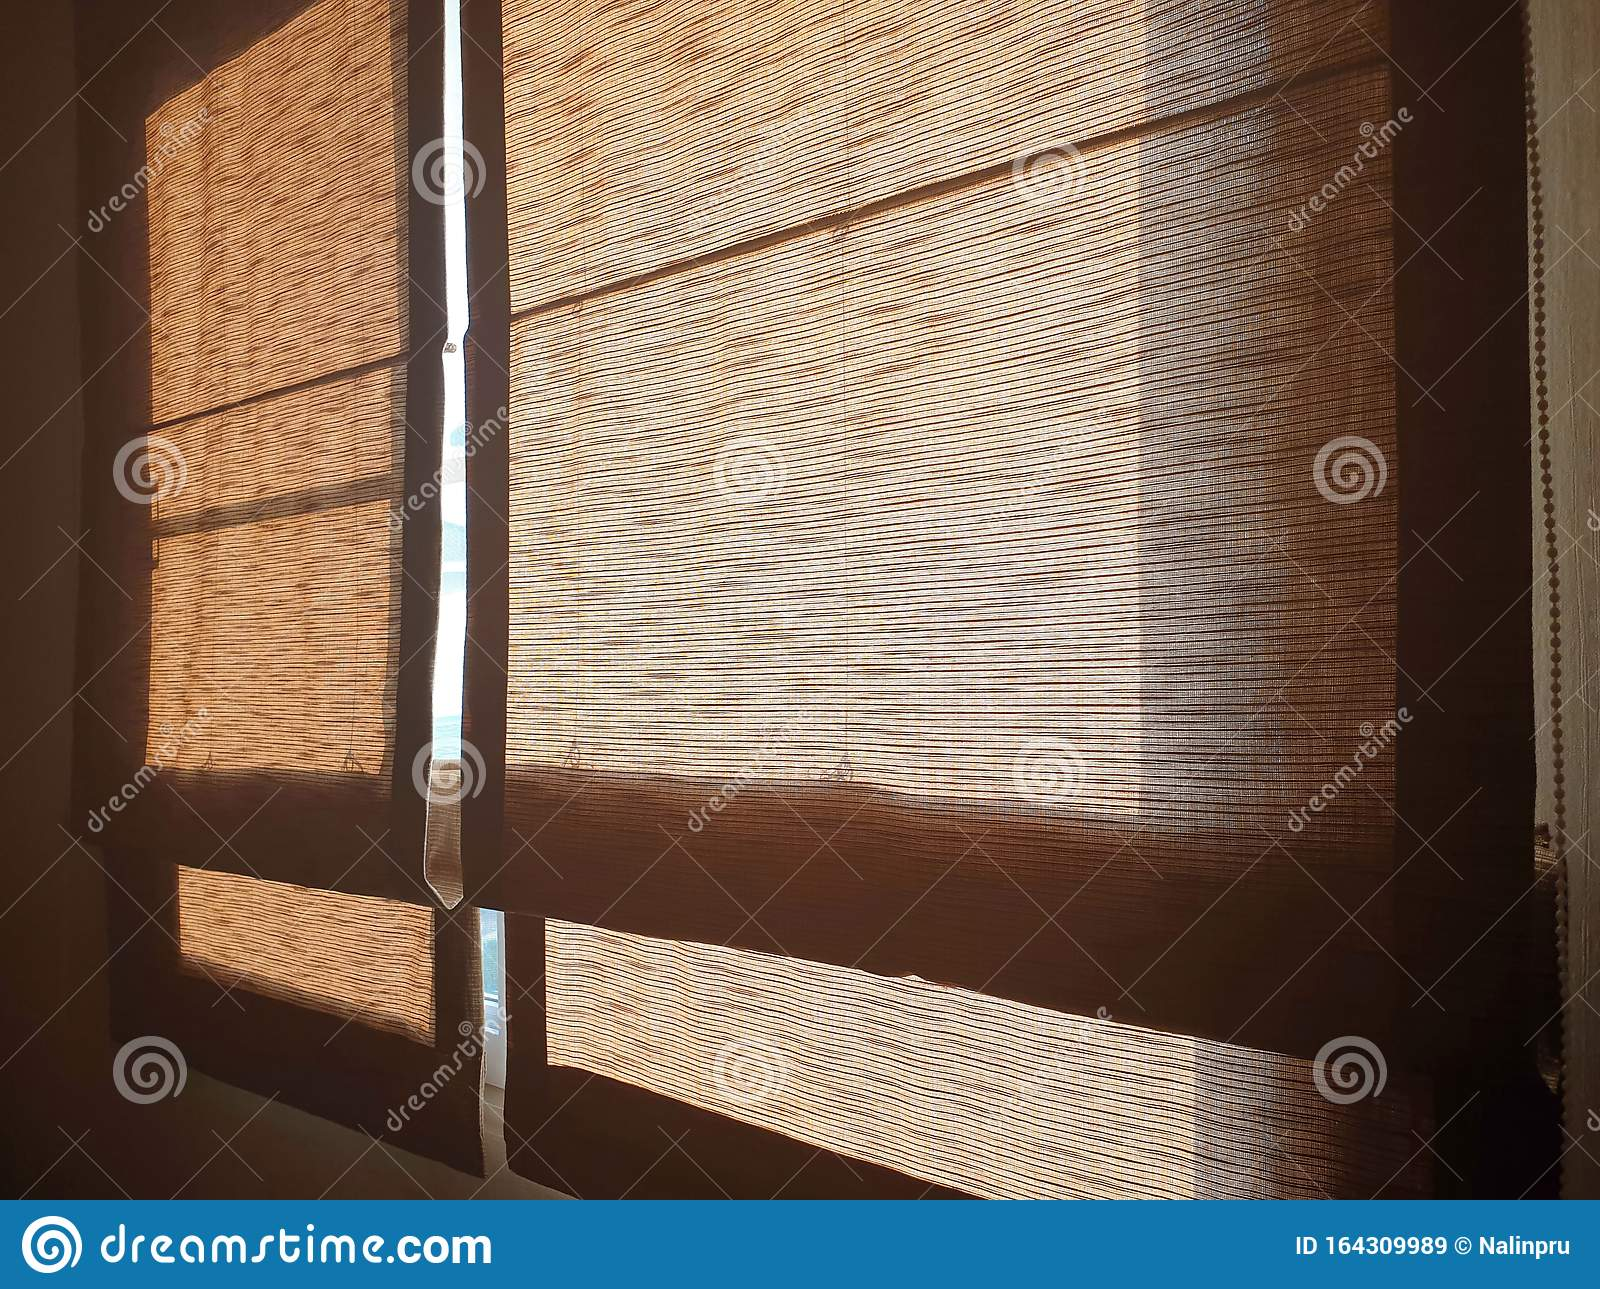 Bedroom Roman Blinds Photos Free Royalty Free Stock Photos From Dreamstime